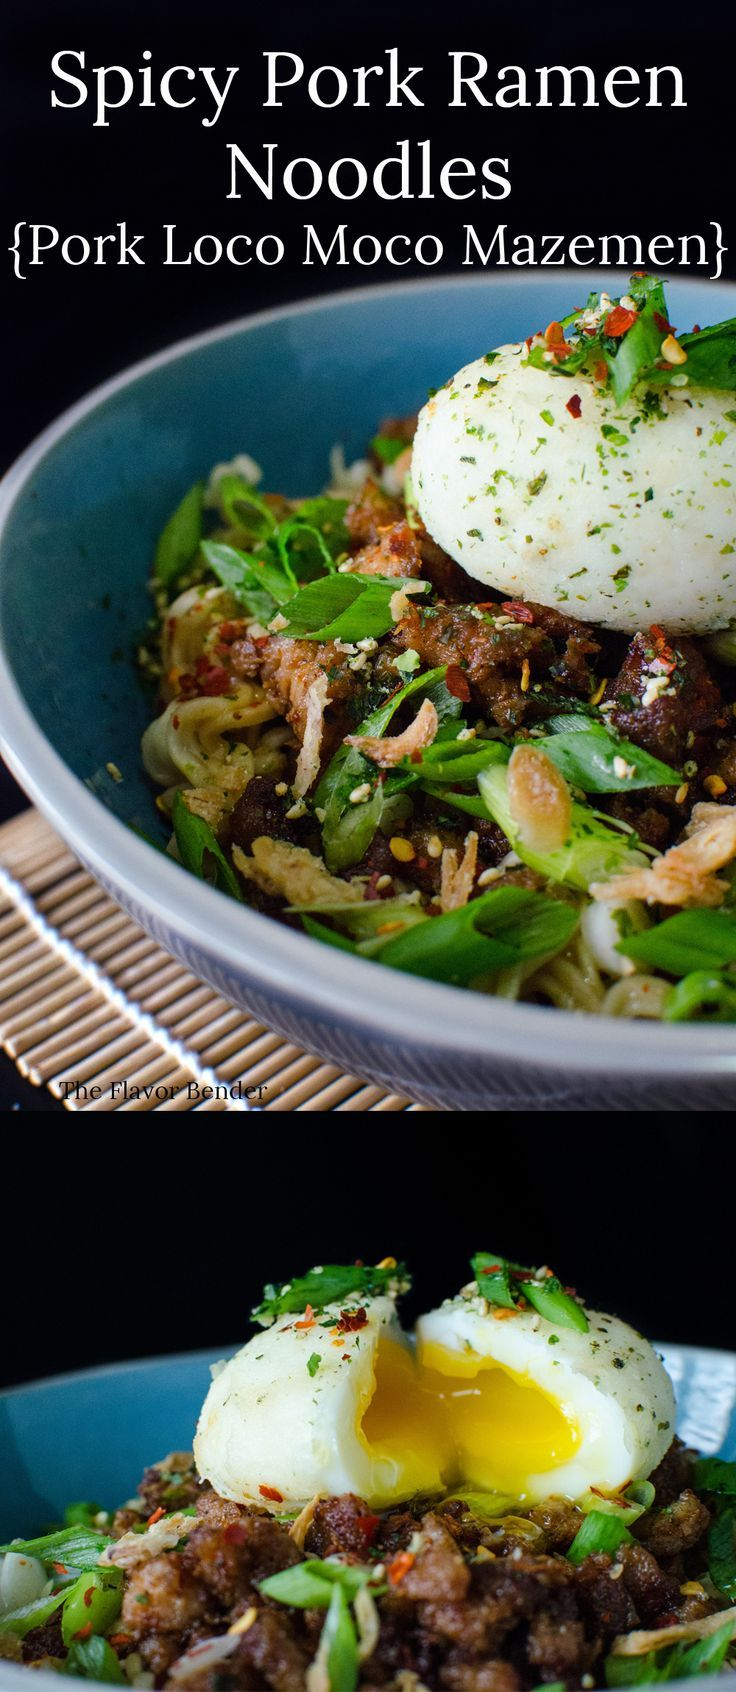 Reviews me and my volkswagen cooking recipes owners features - Spicy Pork Ramen Noodles Make Your Ramen Noodles Gourmet With Crispy Spicy Pork And Ramen Recipeschinese Food